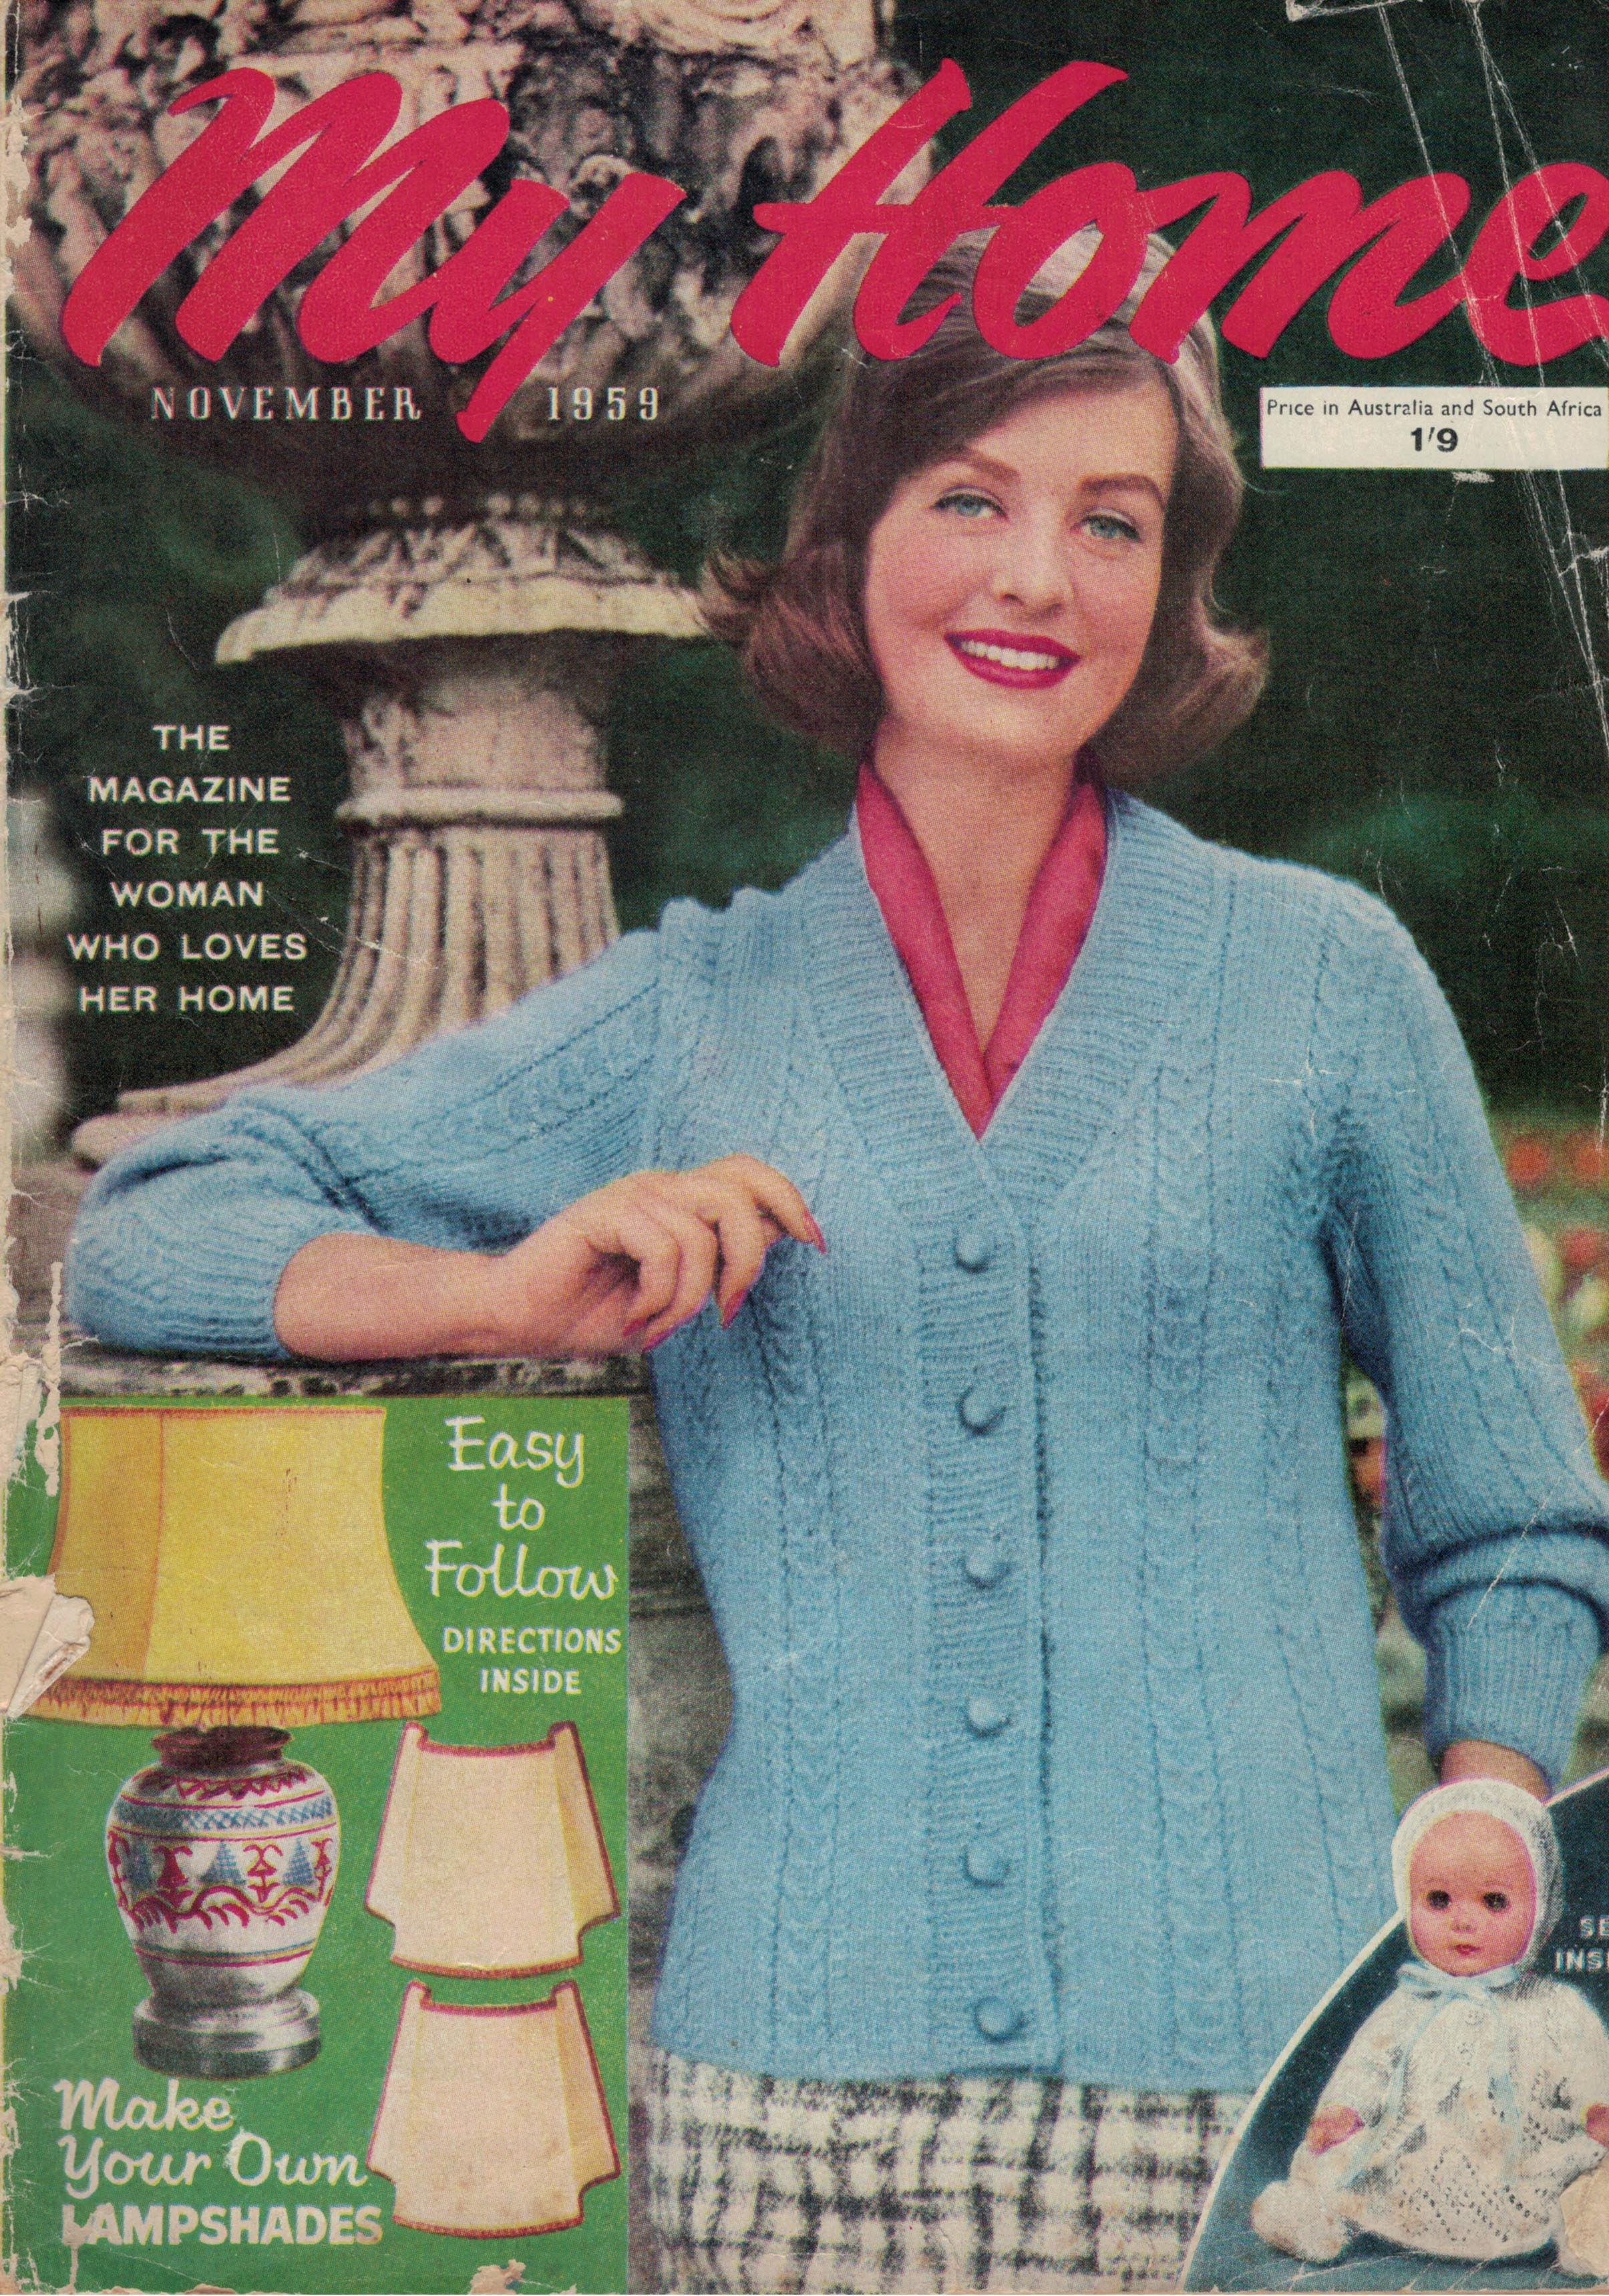 A Thick Jacket My Home 1959